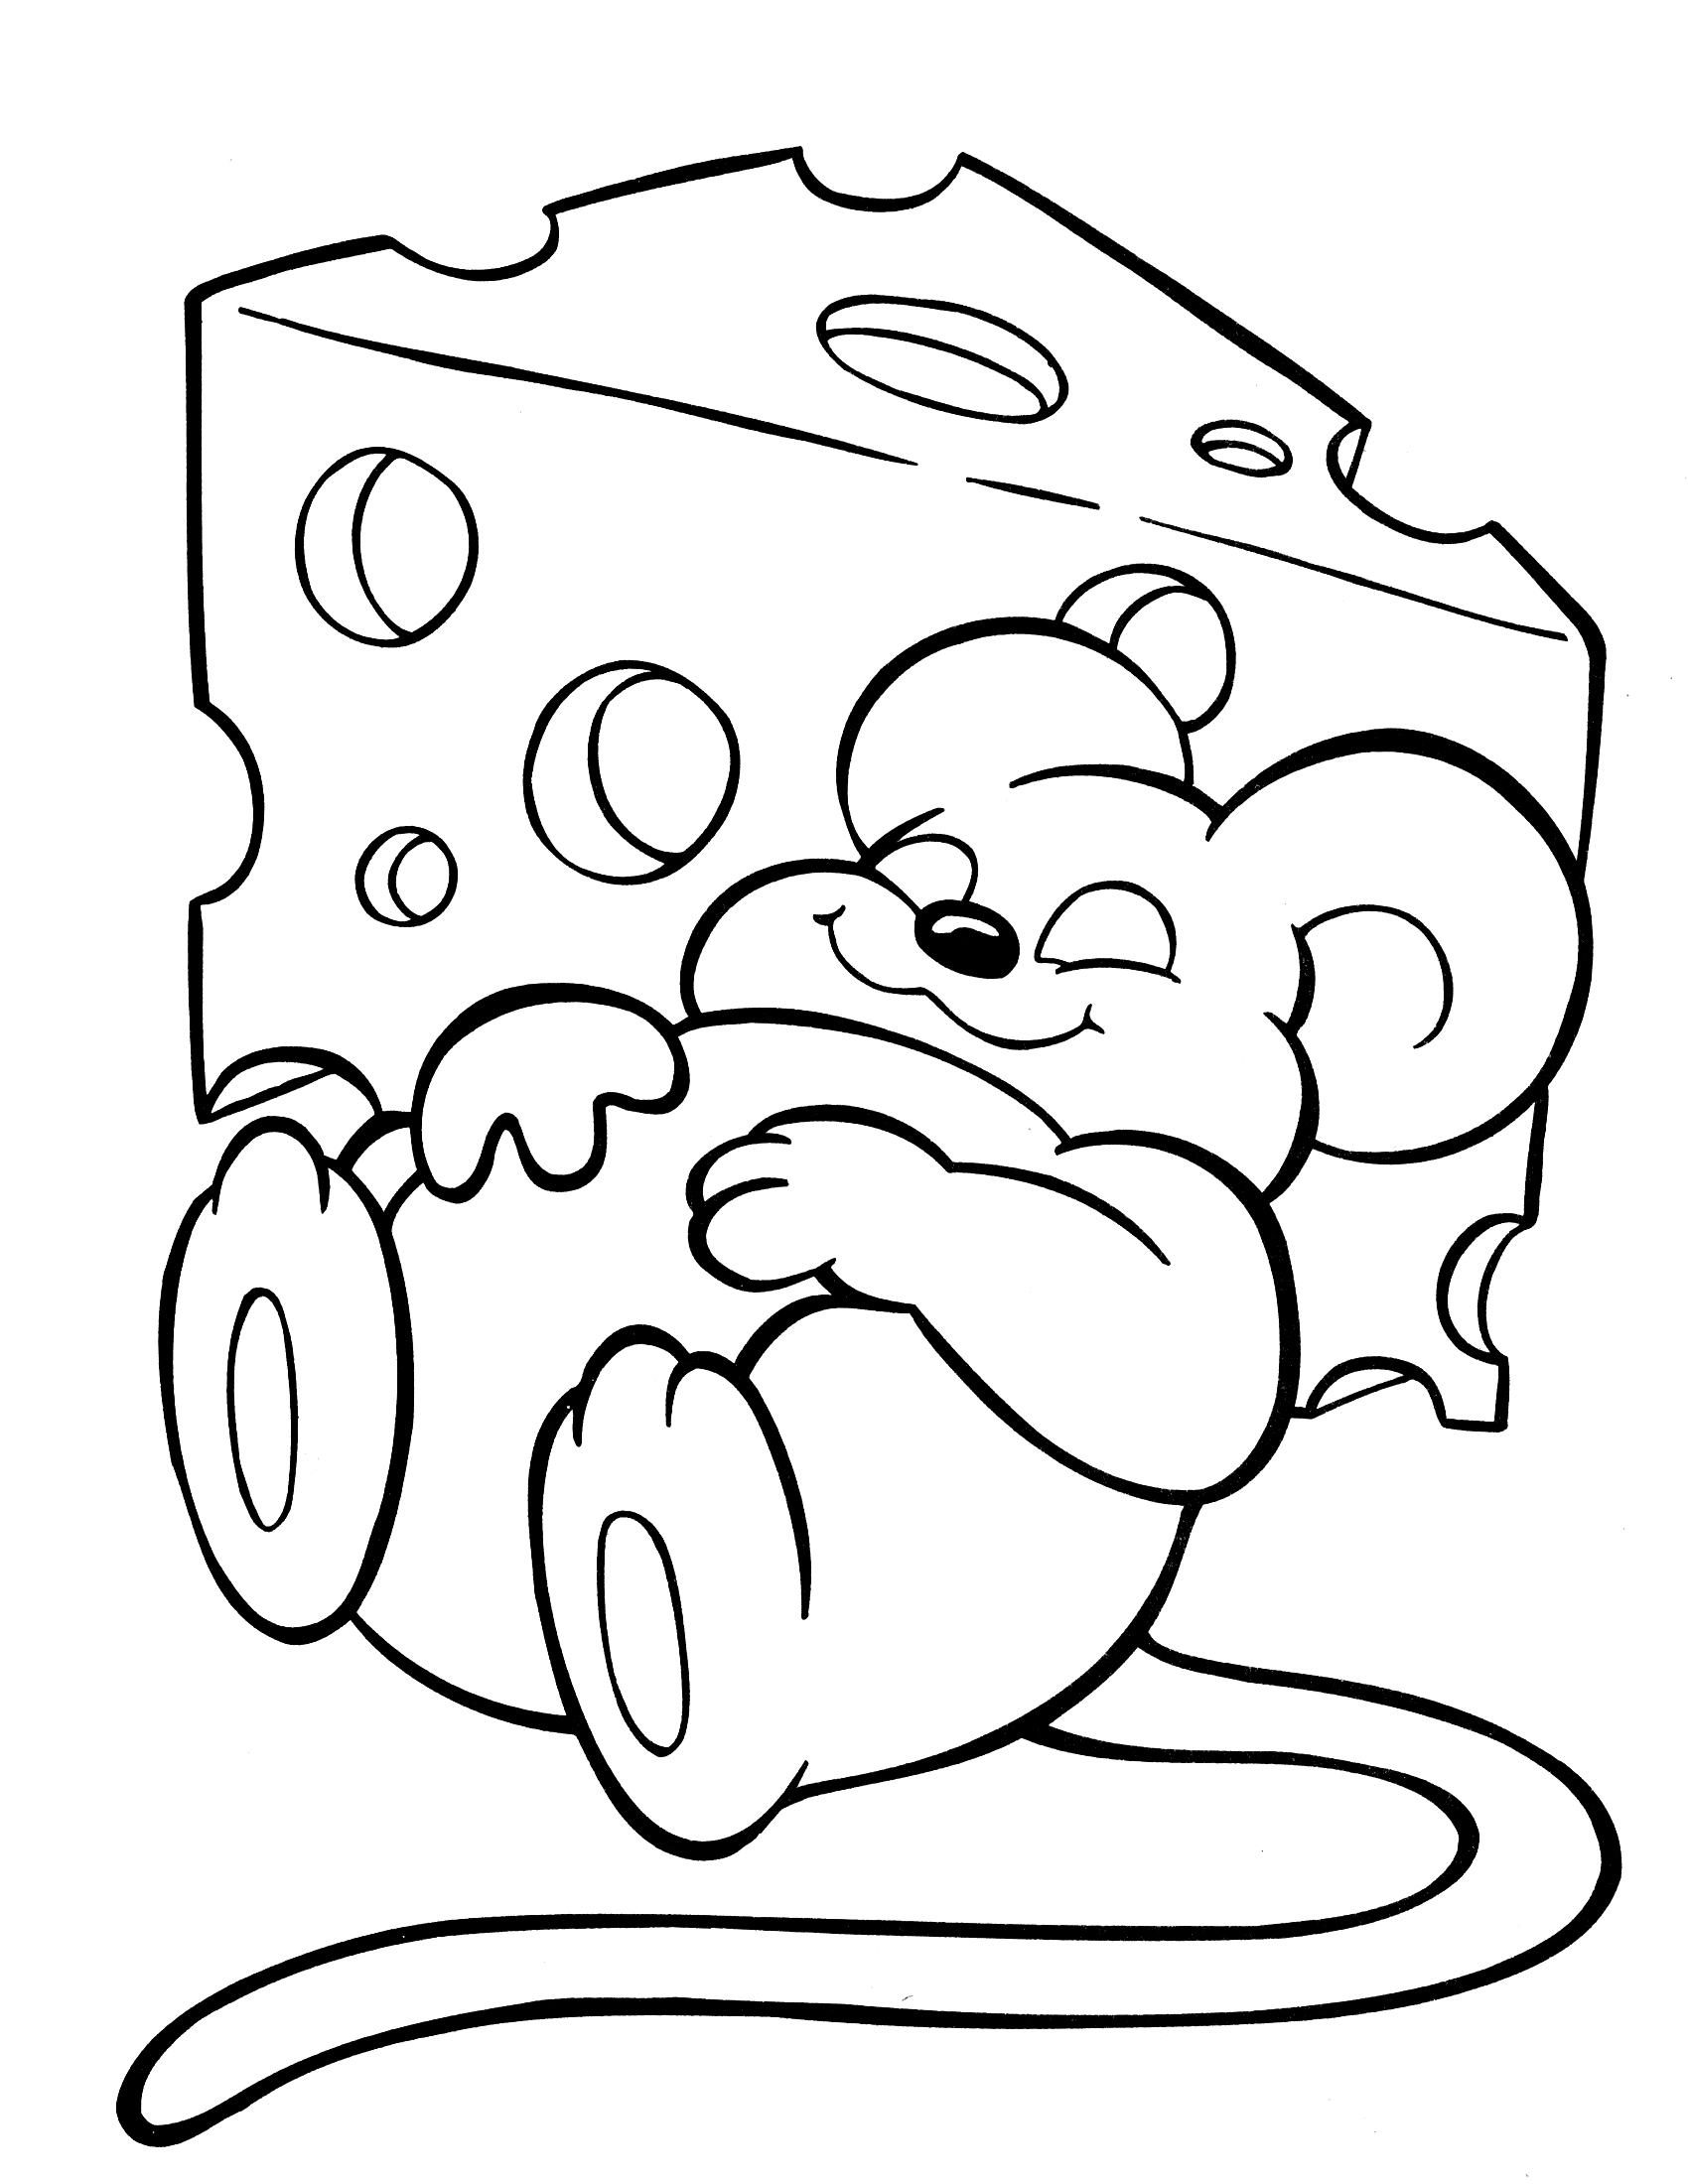 coloring pages from crayola - photo#18